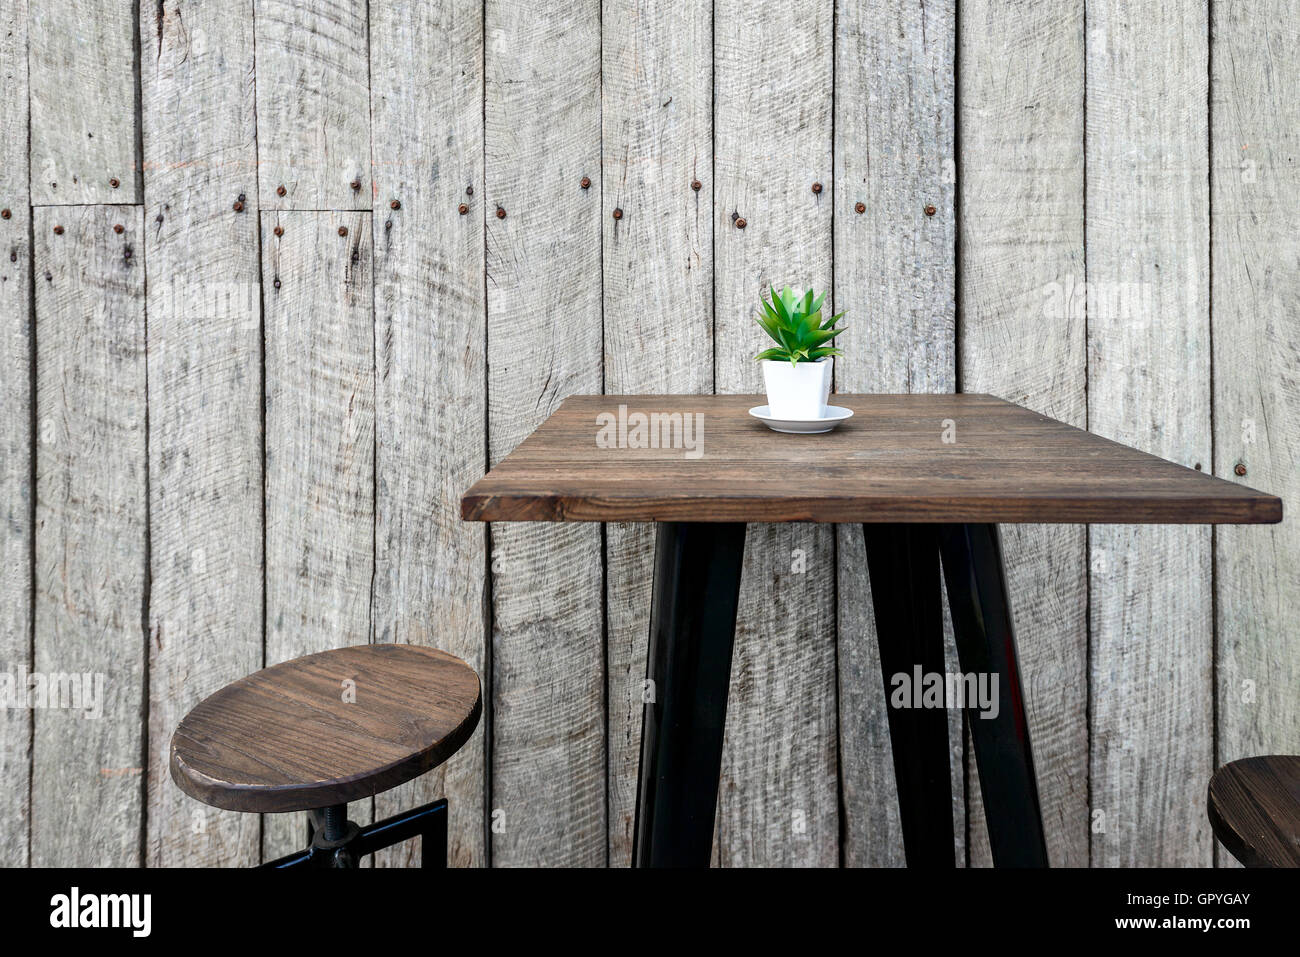 Vintage cafe table and chairs - Stock Photo Vintage Wooden Cafe Table With A Green Flower On Top In The Pot And Barn Wood On The Background